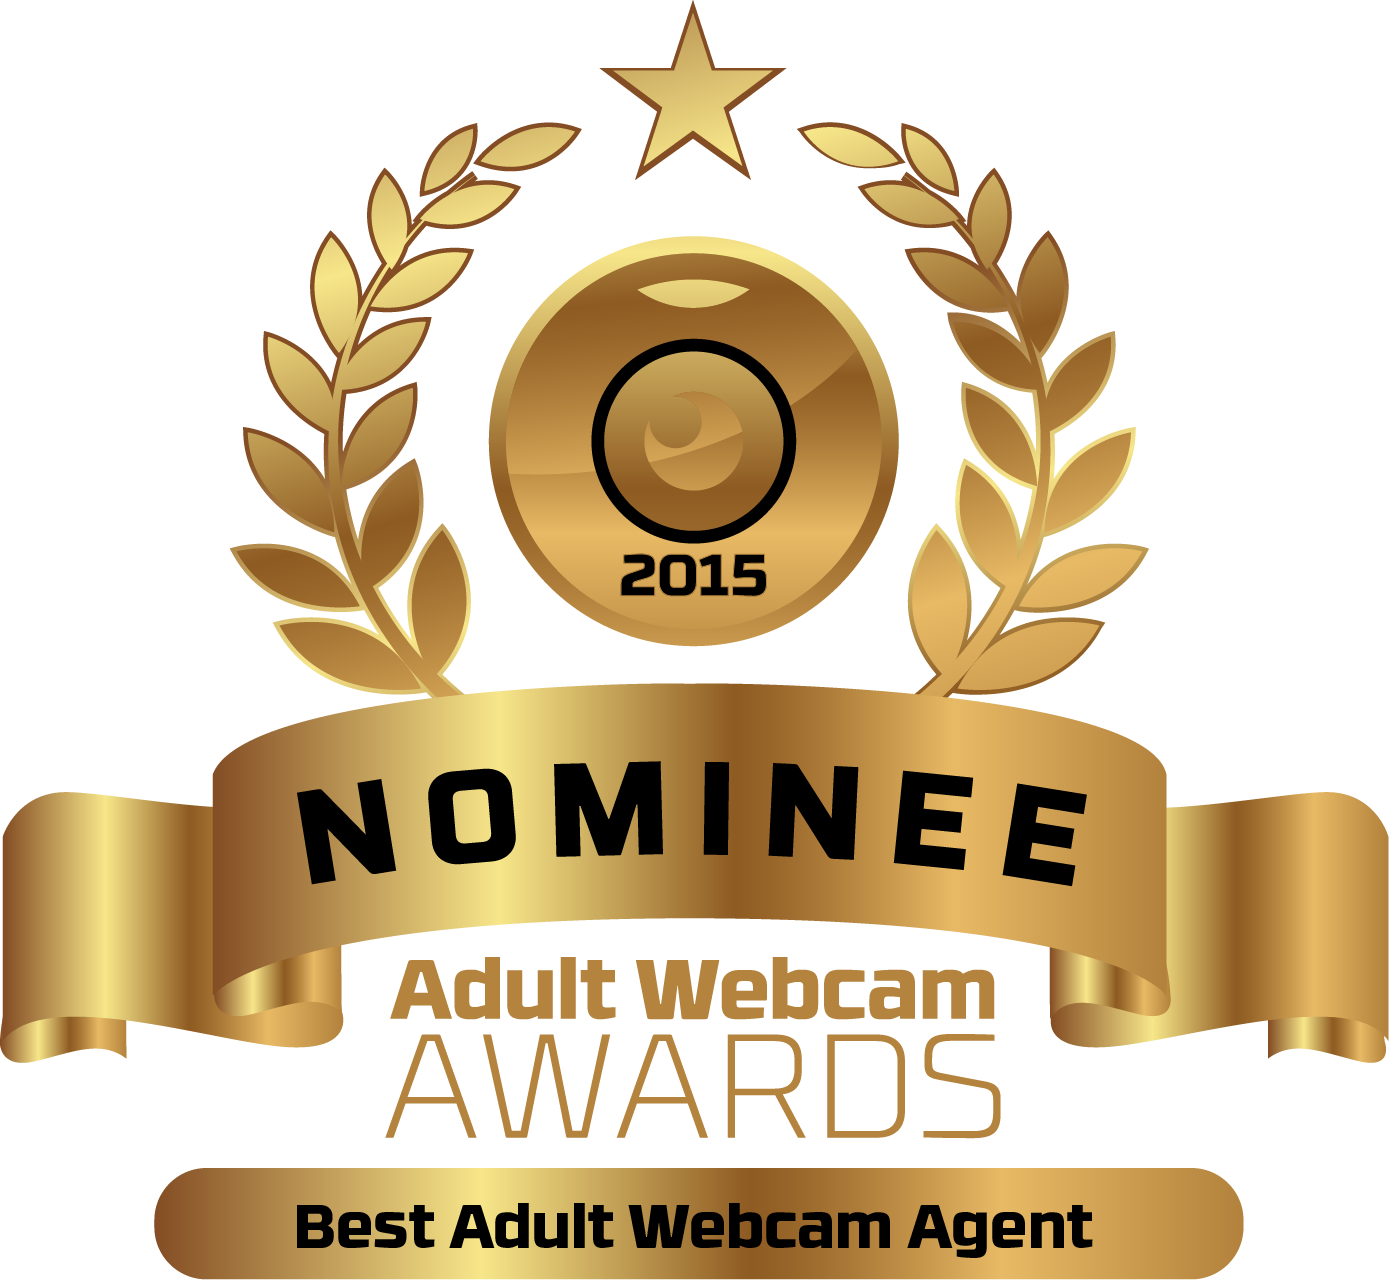 Best Adult Webcam Agent Nominee Badge